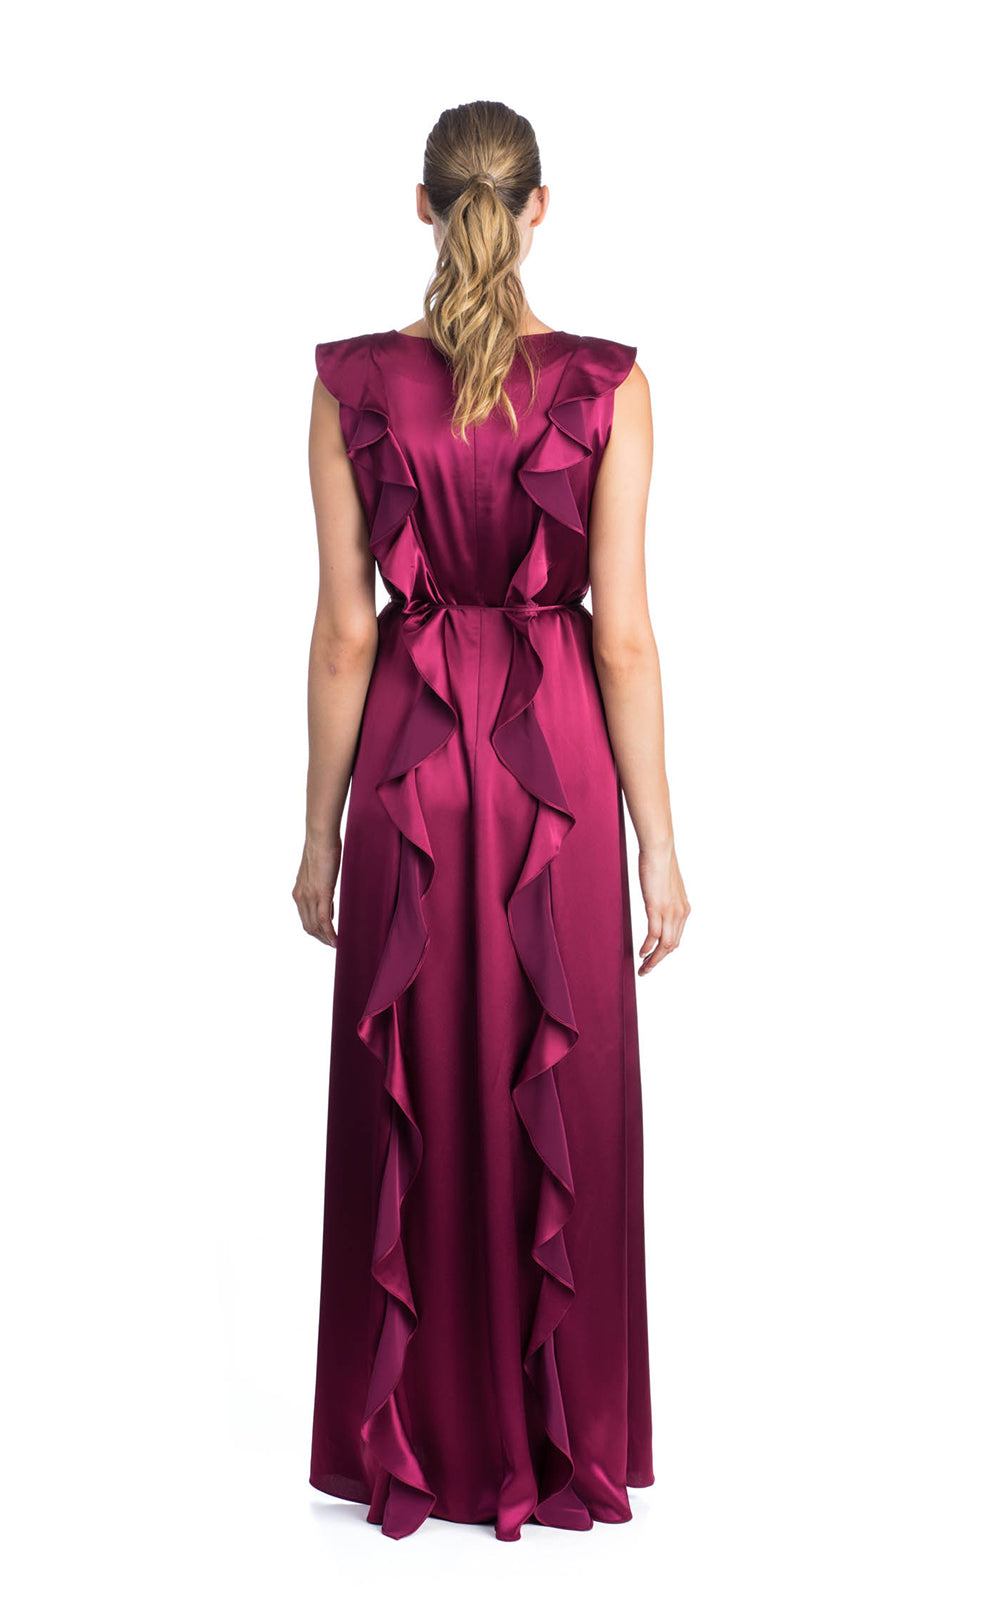 ZAC Zac Posen Fall 216 Jojo Gown Wineberry Hammered Charmeuse Sleeveless Ruffle Detail Tie At Waist Jewel Neckline Slim Fit Back